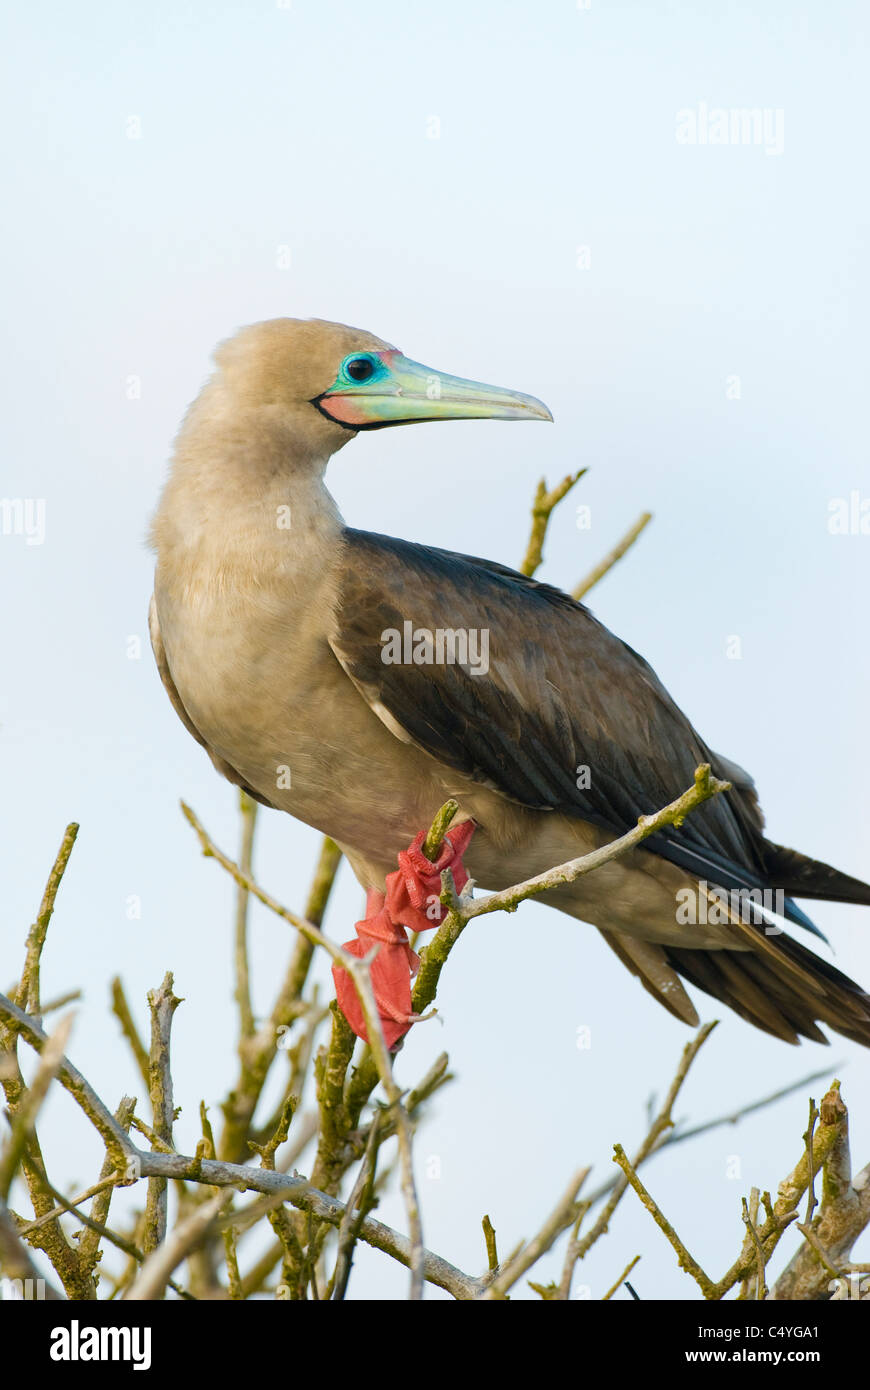 Red-footed booby in tree on Genovesa Island in the Galapagos Islands Ecuador - Stock Image